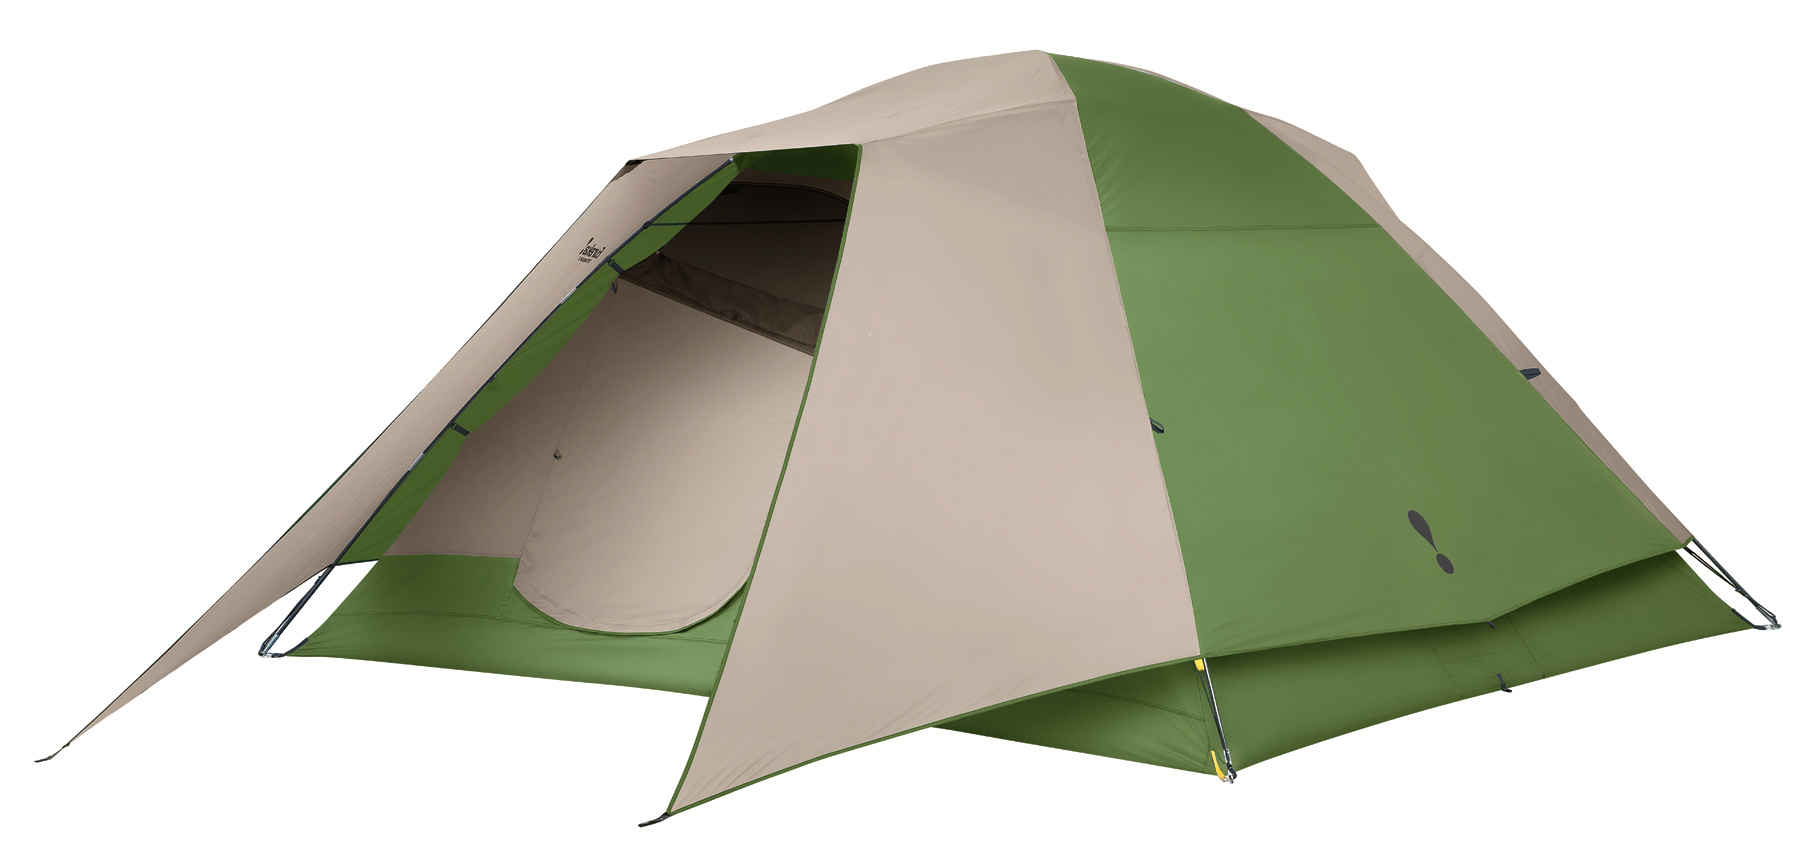 "Camp and Hike Designed for the occasional camper, this eight person sized freestanding dome tent offers easy set-up for convenient weekend campouts.Key Features of the Eureka Tetragon 8 Person Tent: The fly features 2 fly rods that form a brim over the door for protection from the elements and to add strength and stability to the tent. The tent's free standing and shockcorded fiberglass frame is lightweight and slides easily through fabric sleeves for fast set up. Clips secure the tent body to the frame. Two side-opening, twin-track doors, each consisting of a no-see-um mesh panel and a fabric panel, allow flexibility for venting & insect protection. Zipper covers on the doors provide protection from water. Two interior pockets keep essentials close at hand. A gear loft provides extra storage overhead. Matching yellow webbing on tent & fly couple with the ring & pin assembly to make set up fast. Removable zippered divider creates two rooms for privacy and rolls back to reveal one large room. Bathtub floor wraps up sides of tent, protecting against splashing and standing water. Sleeps 8 Floor Size 12' x 10' Pack Size 8"" x 30"" Min Weight 20 lbs 2 oz Seasons 3 Tent Area 120 sq ft Center Height 6' 4"" Frame 12.7 mm fiberglass, ring & pin Vents Mesh roof panels Doors 2 Windows 4 Vestibules N/A Vestibule Area N/A Gear Loft 1 Included Gear Loft Loops 4 Flashlight Loop 1 Storage Pockets 2 Wall 75D 185T polyester taffeta, 800 mm coated Fly 75D 185T polyester taffeta, 800 mm coated Floor 75D 210T polyester taffeta, 800 mm coated Mesh 50D polyester no-see-um - $223.95"